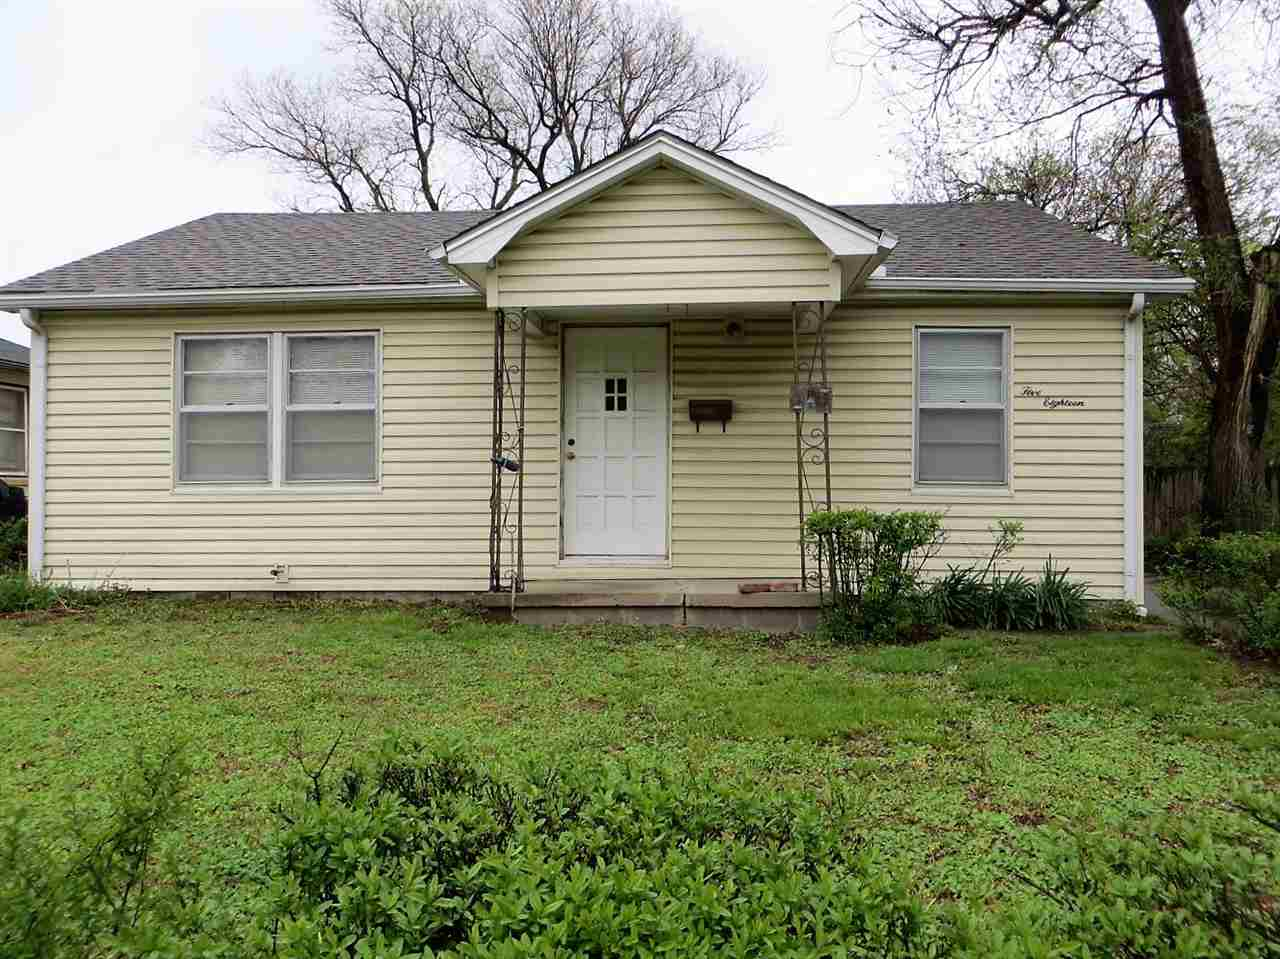 What a find! Four bedroom ranch with detached 2-Car garage for $70,000.  This is an estate and the h